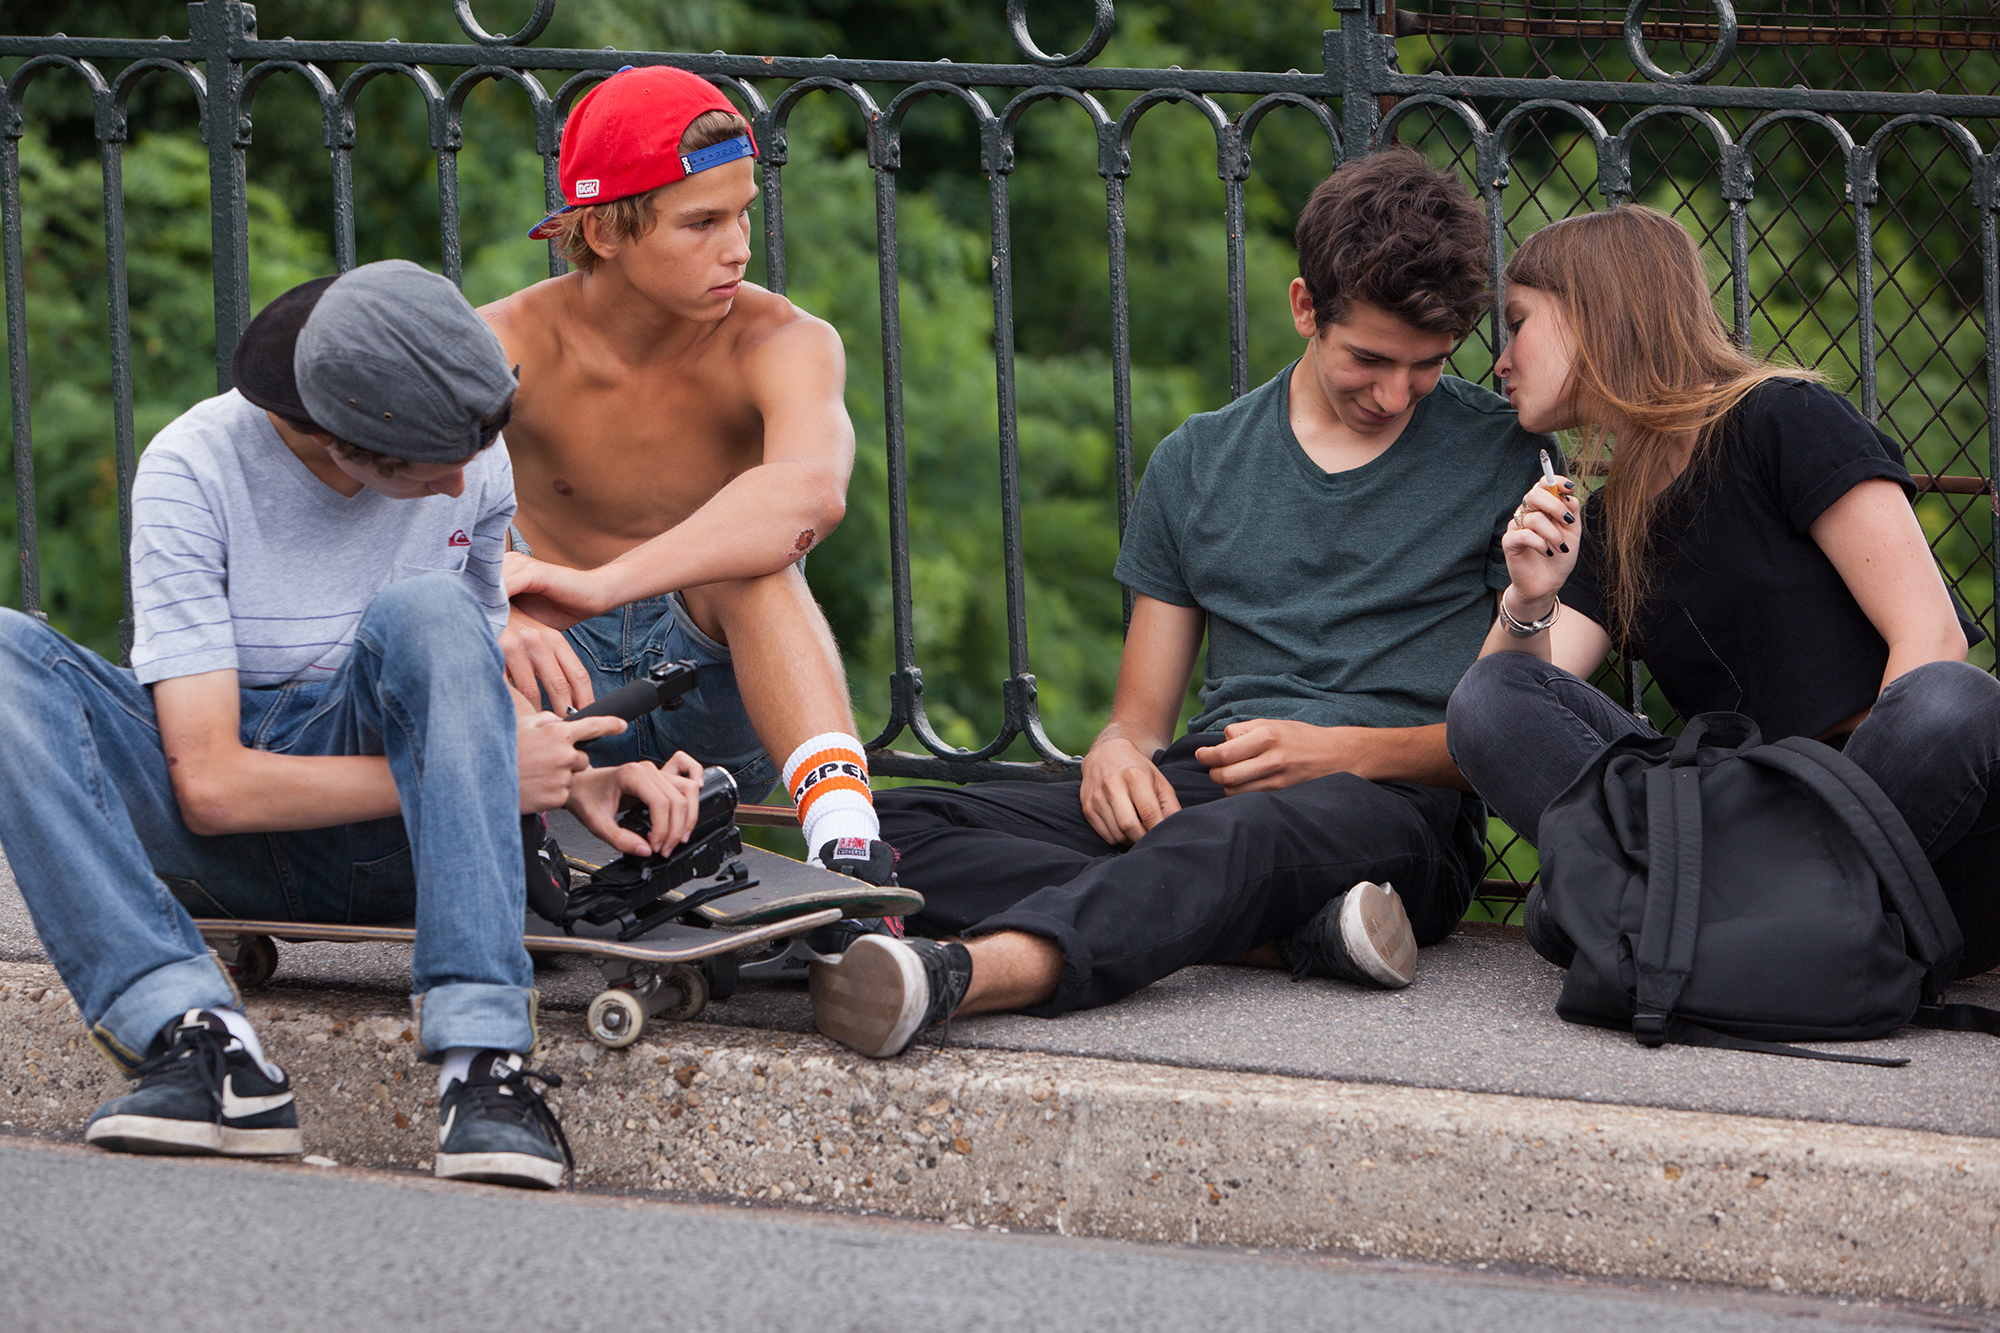 The Smell Of Us: una scena collettiva del film di Larry Clark